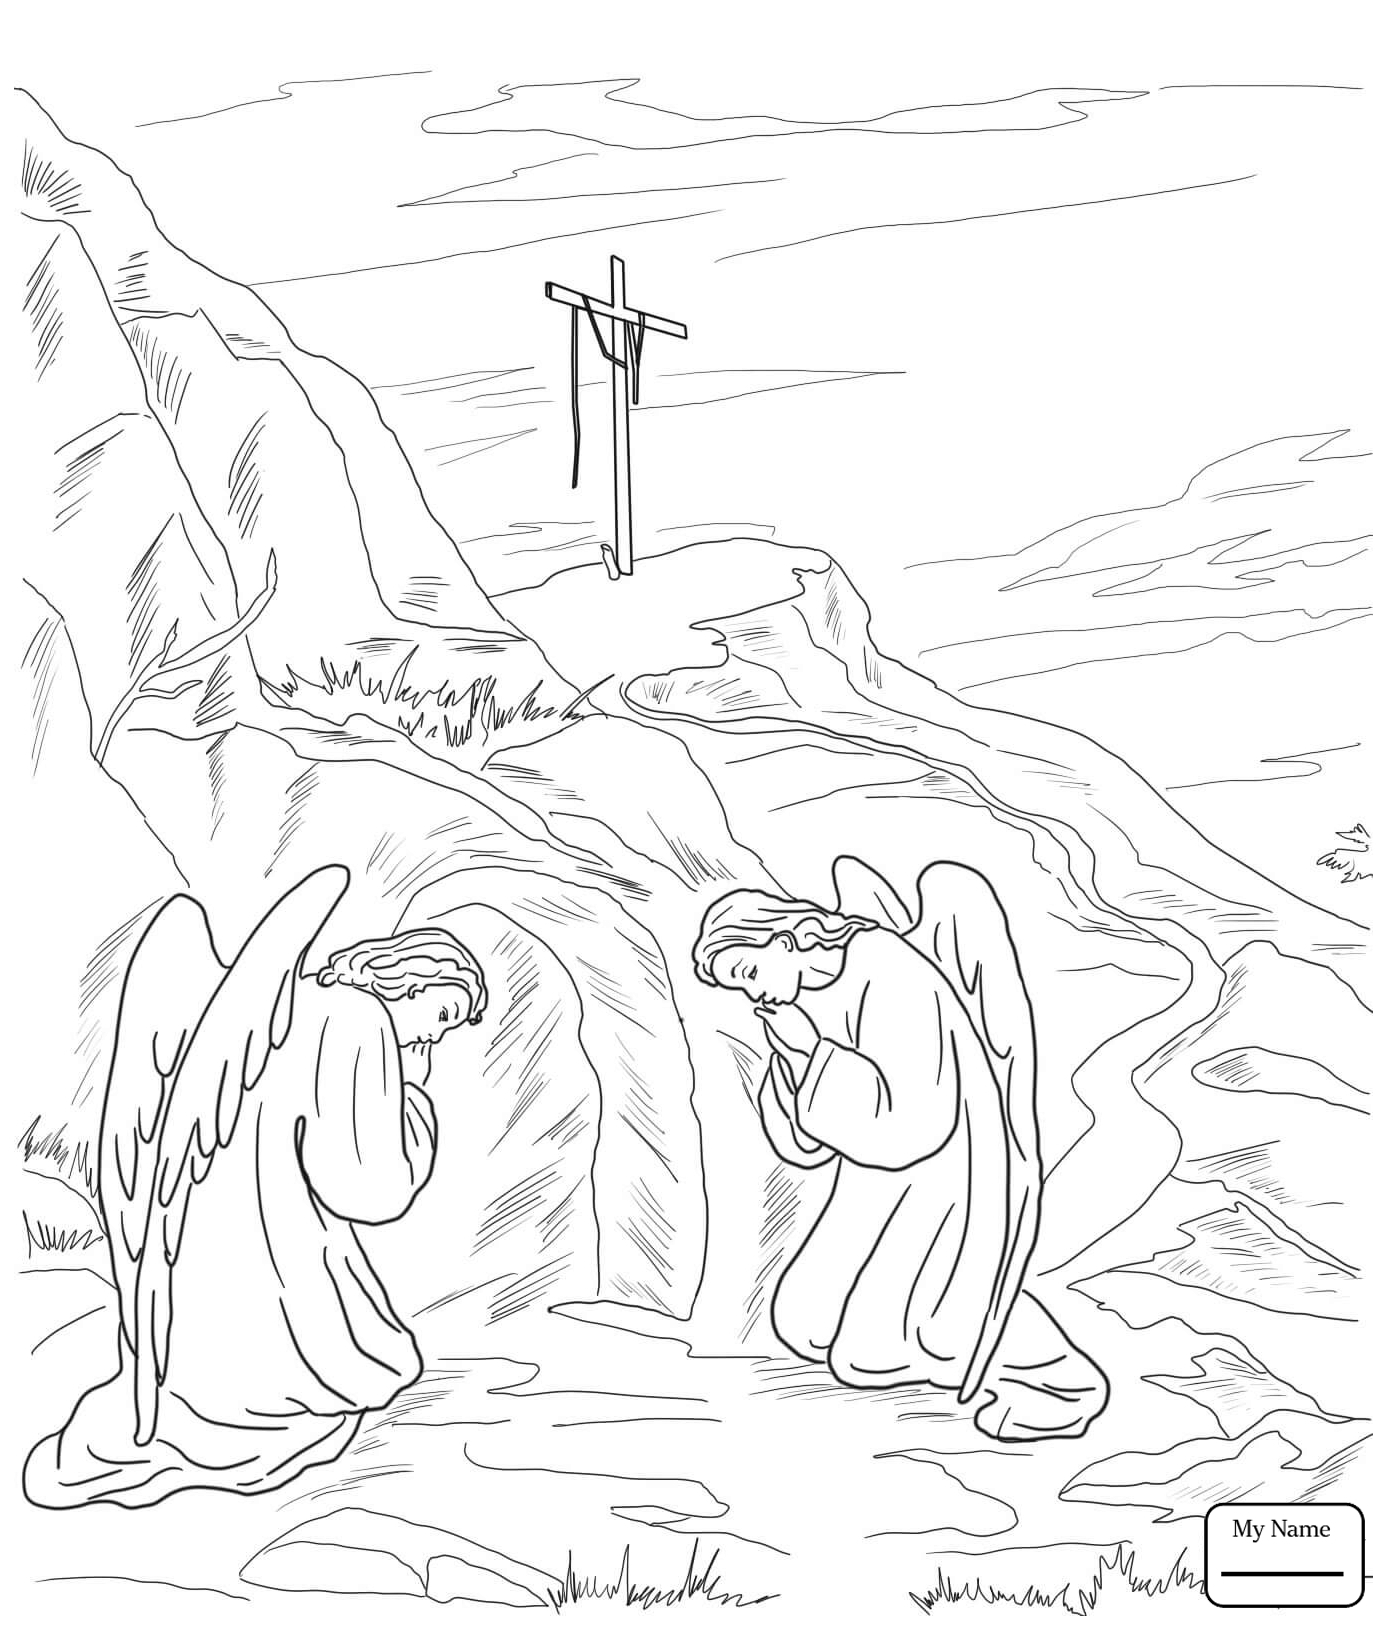 Coloring Pages Of Jesus Christ Resurrection Gallery | Free Coloring ...